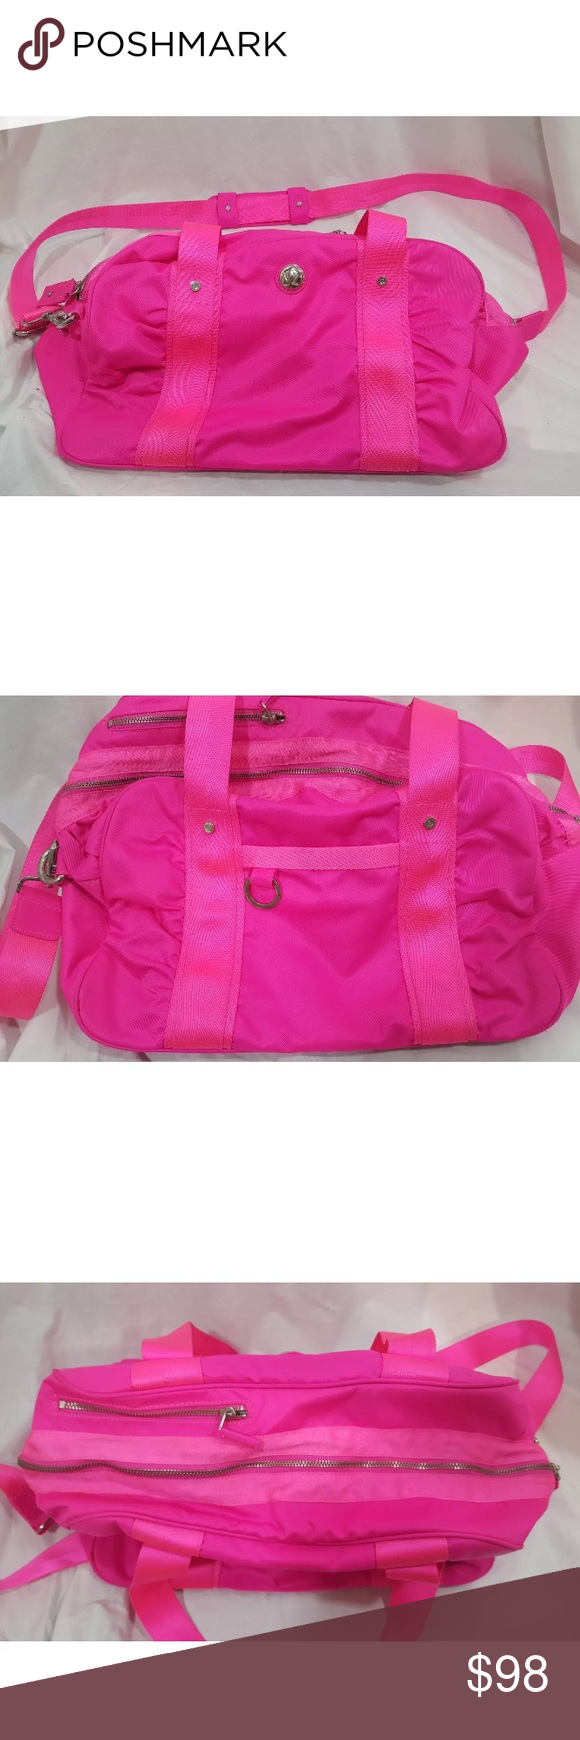 Neon Pink Lululemon Duffle Bag 10 Condition Bright Great Gym Just Want Something A Little Less Via P